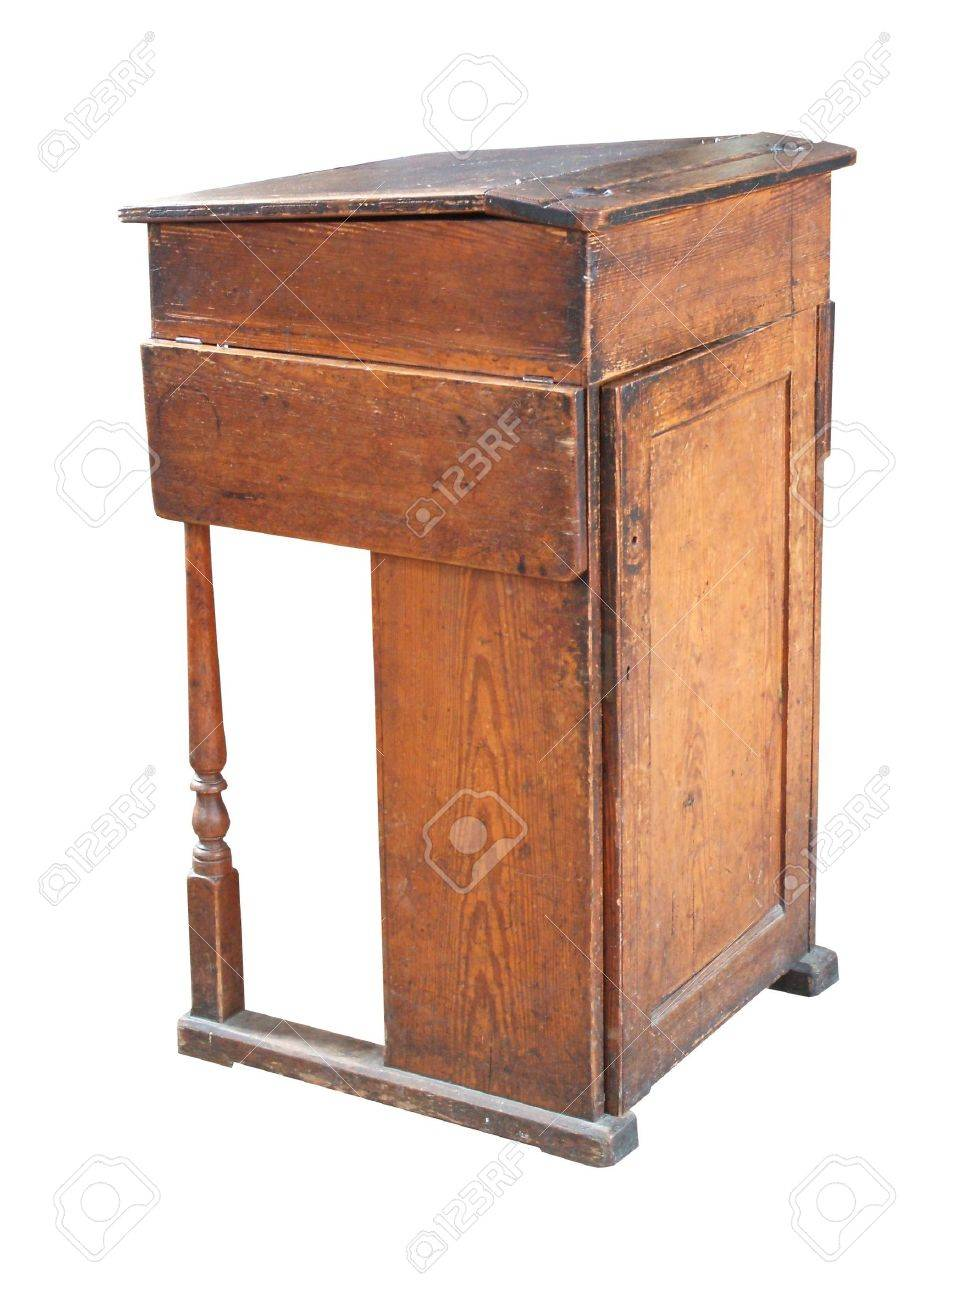 An Antique Wooden School Teachers High Desk. Stock Photo - 7133197 - An Antique Wooden School Teachers High Desk. Stock Photo, Picture